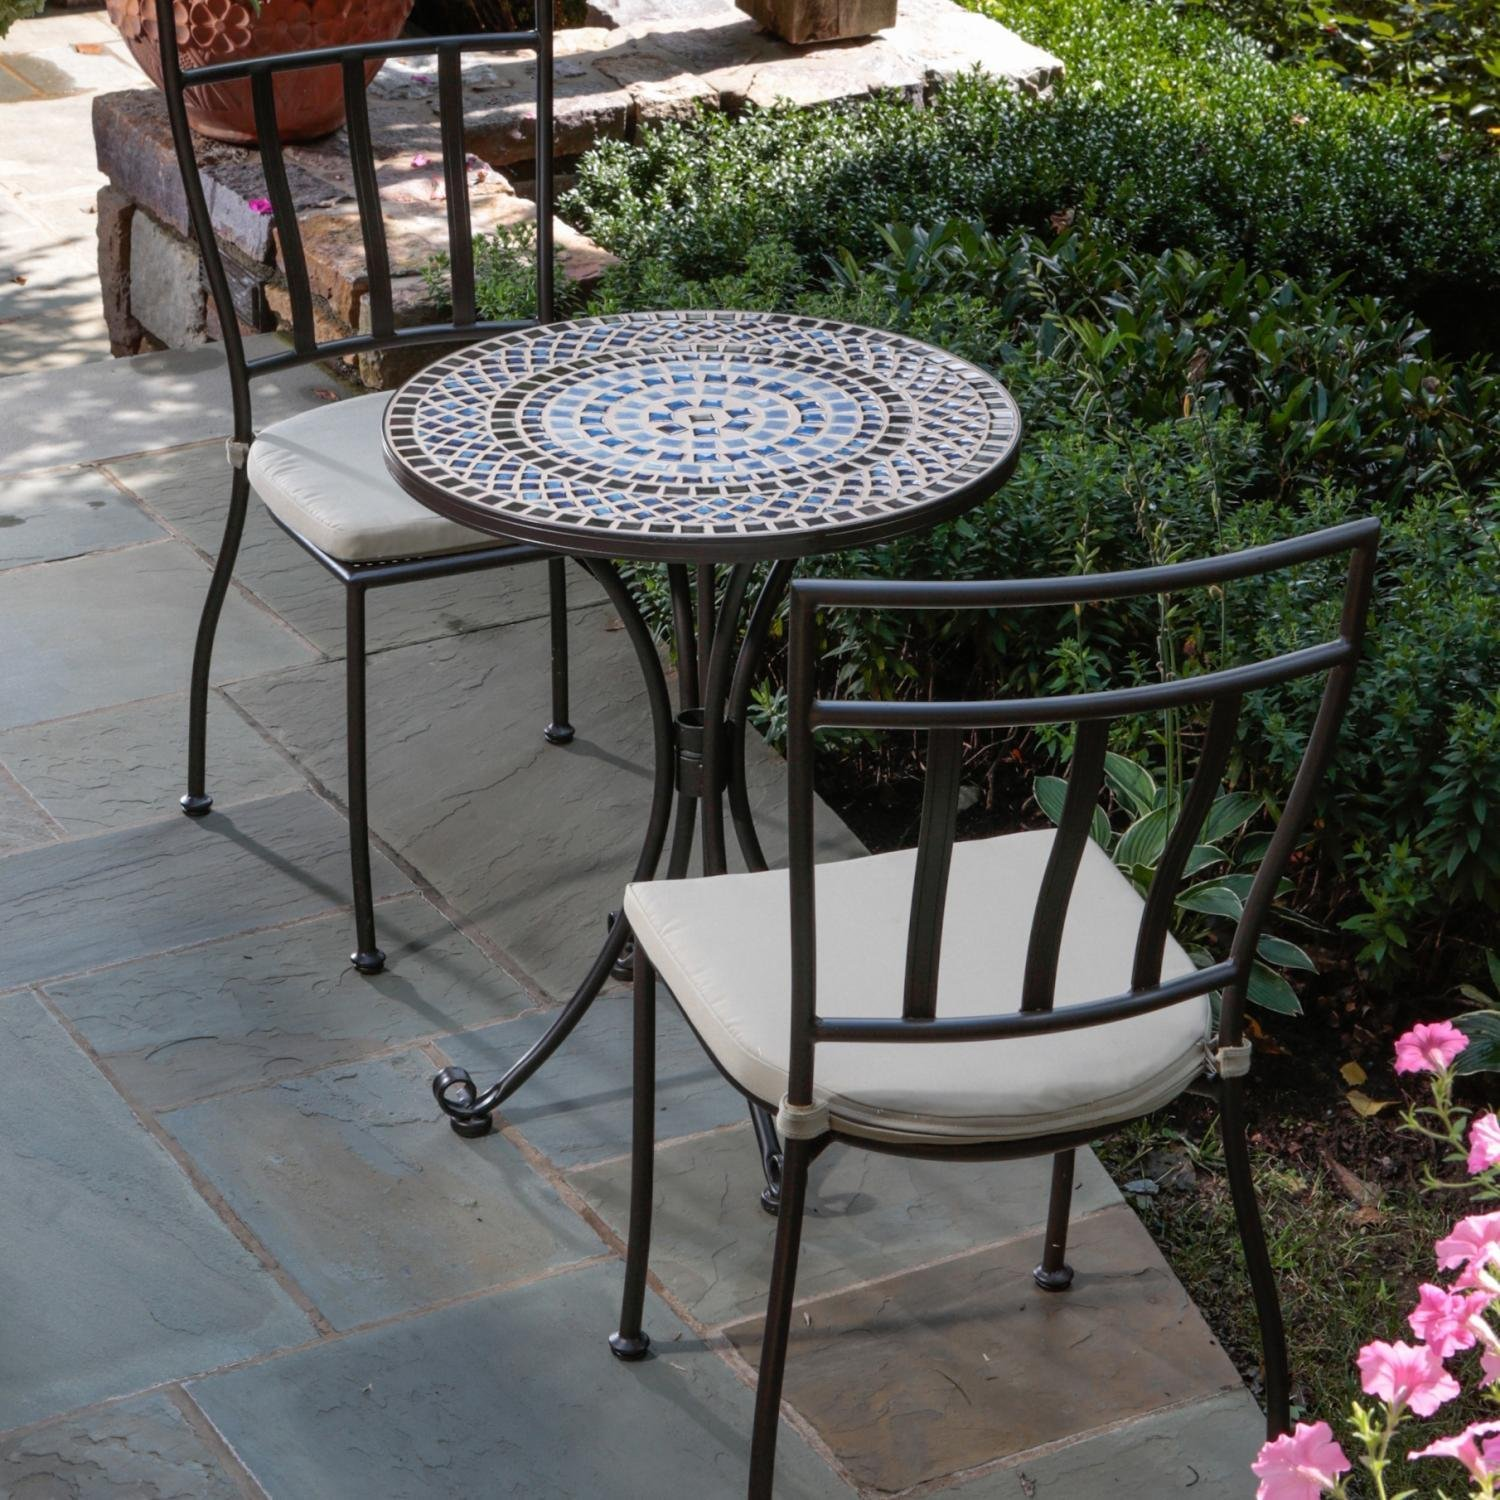 Charming Mosaic Bistro Table With Black Legs And Double Chair On Tile Floor  For Charming Patio